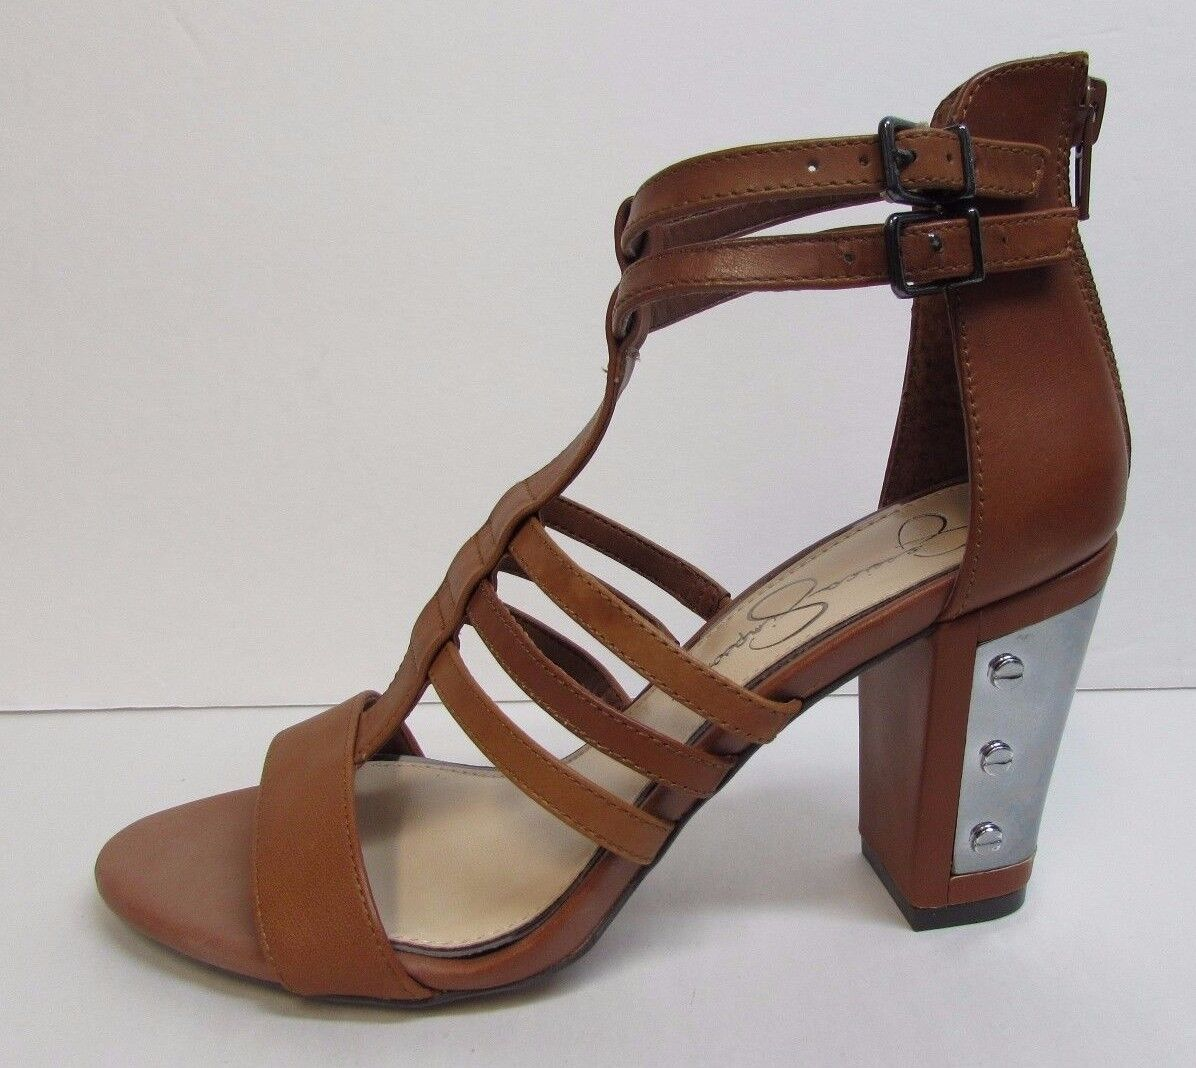 Jessica Simpson Size 6 Brown Leather Heels New Womens shoes